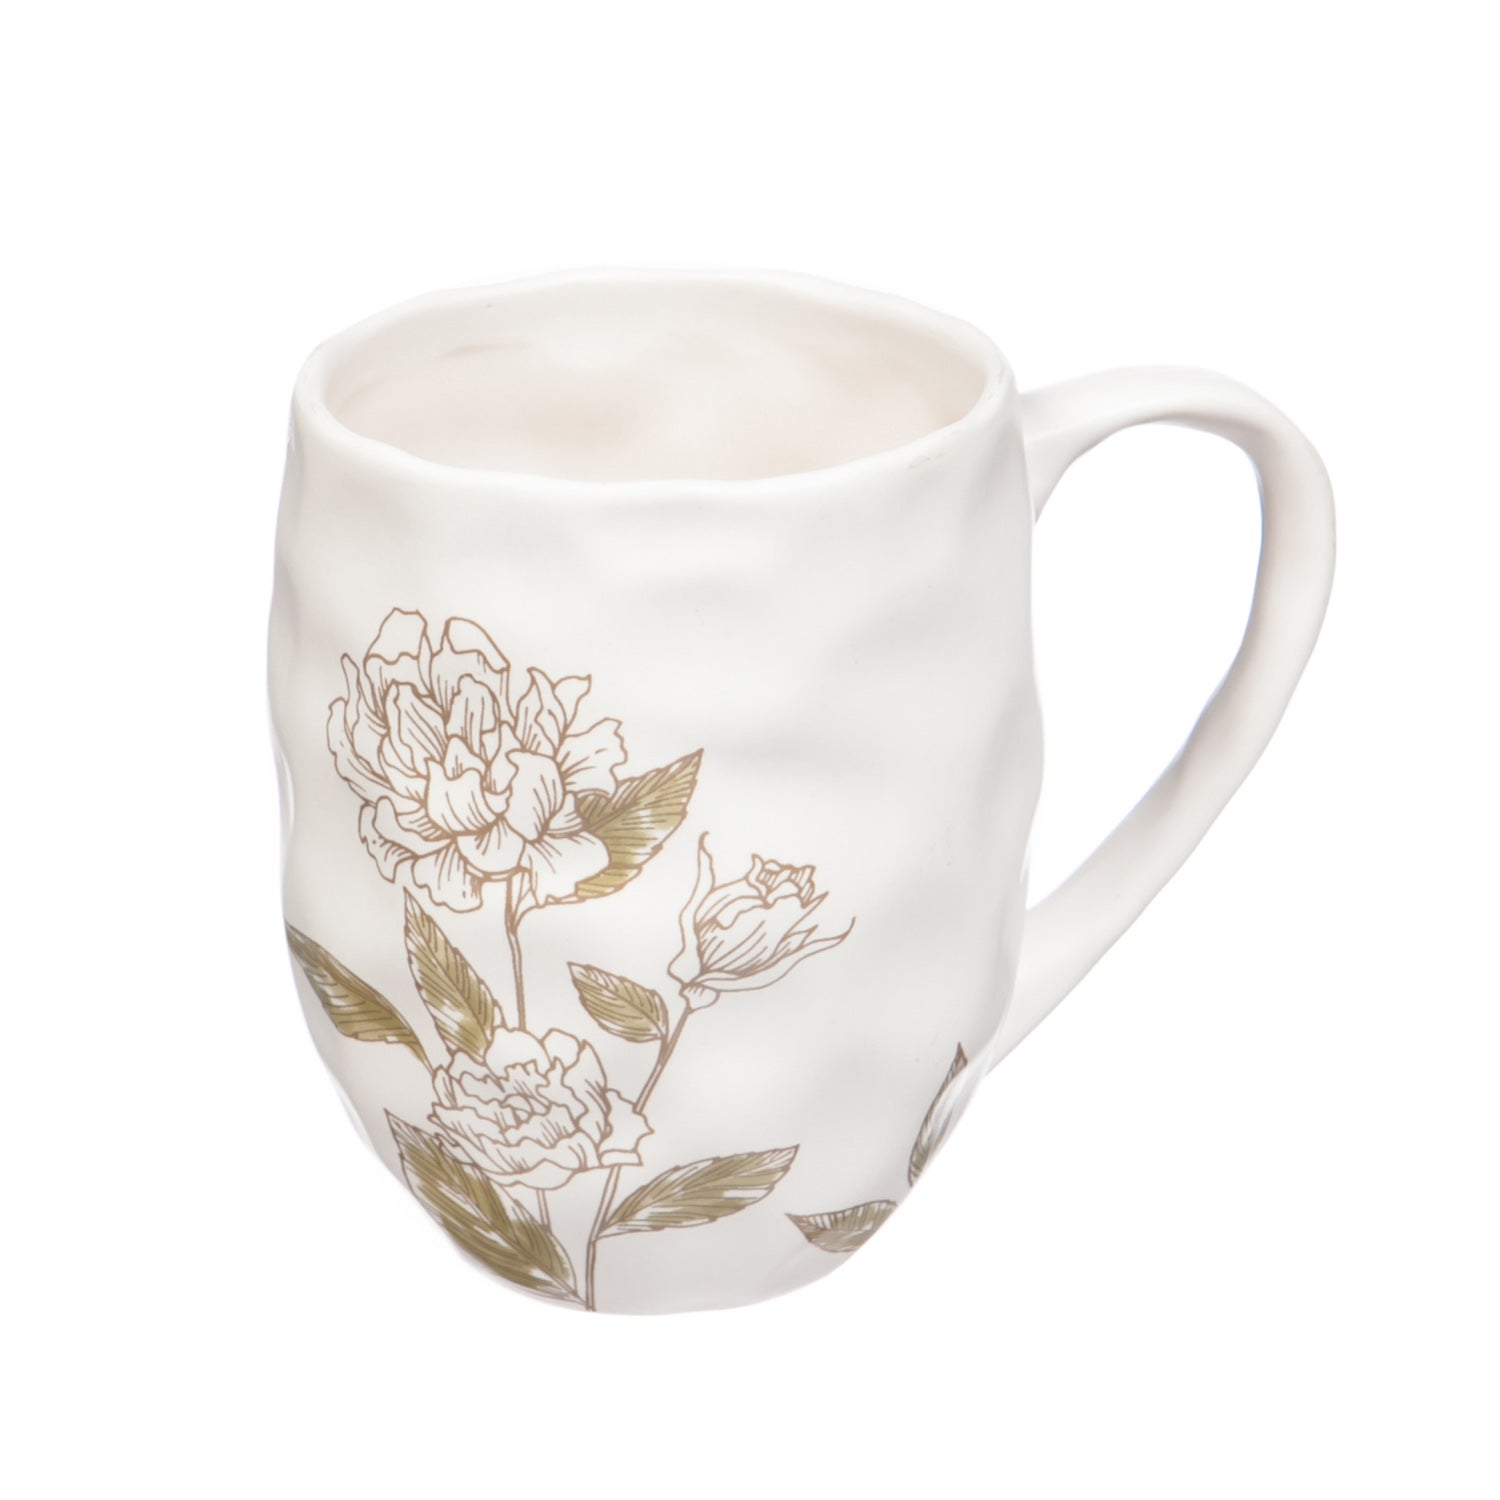 At Ease Traditional Ceramic Coffee Cup